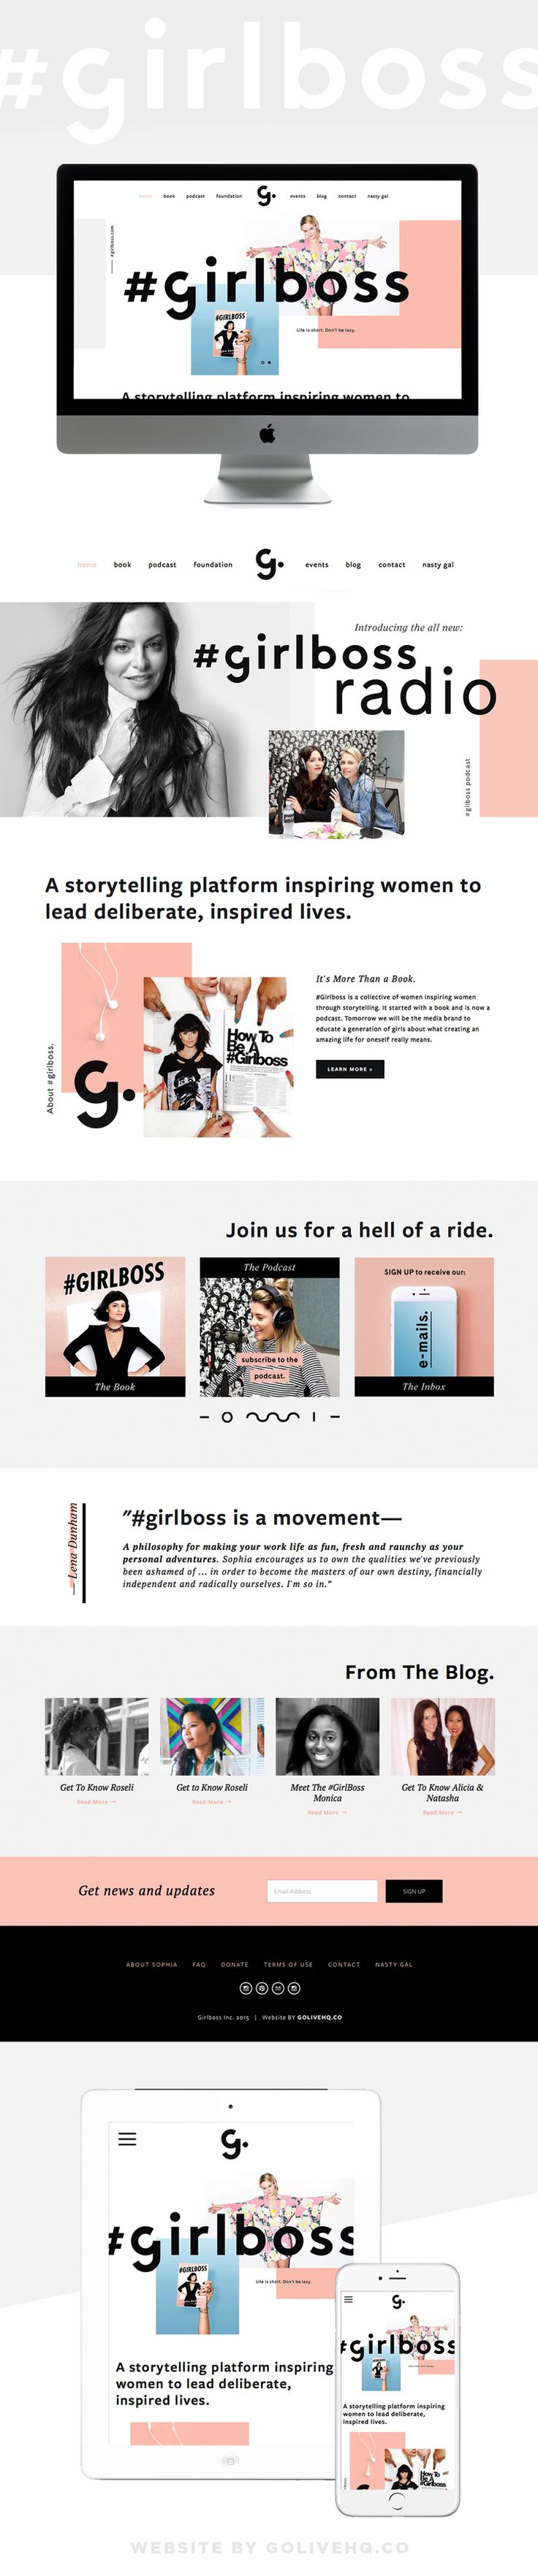 #GIRLBOSS IS LIVE